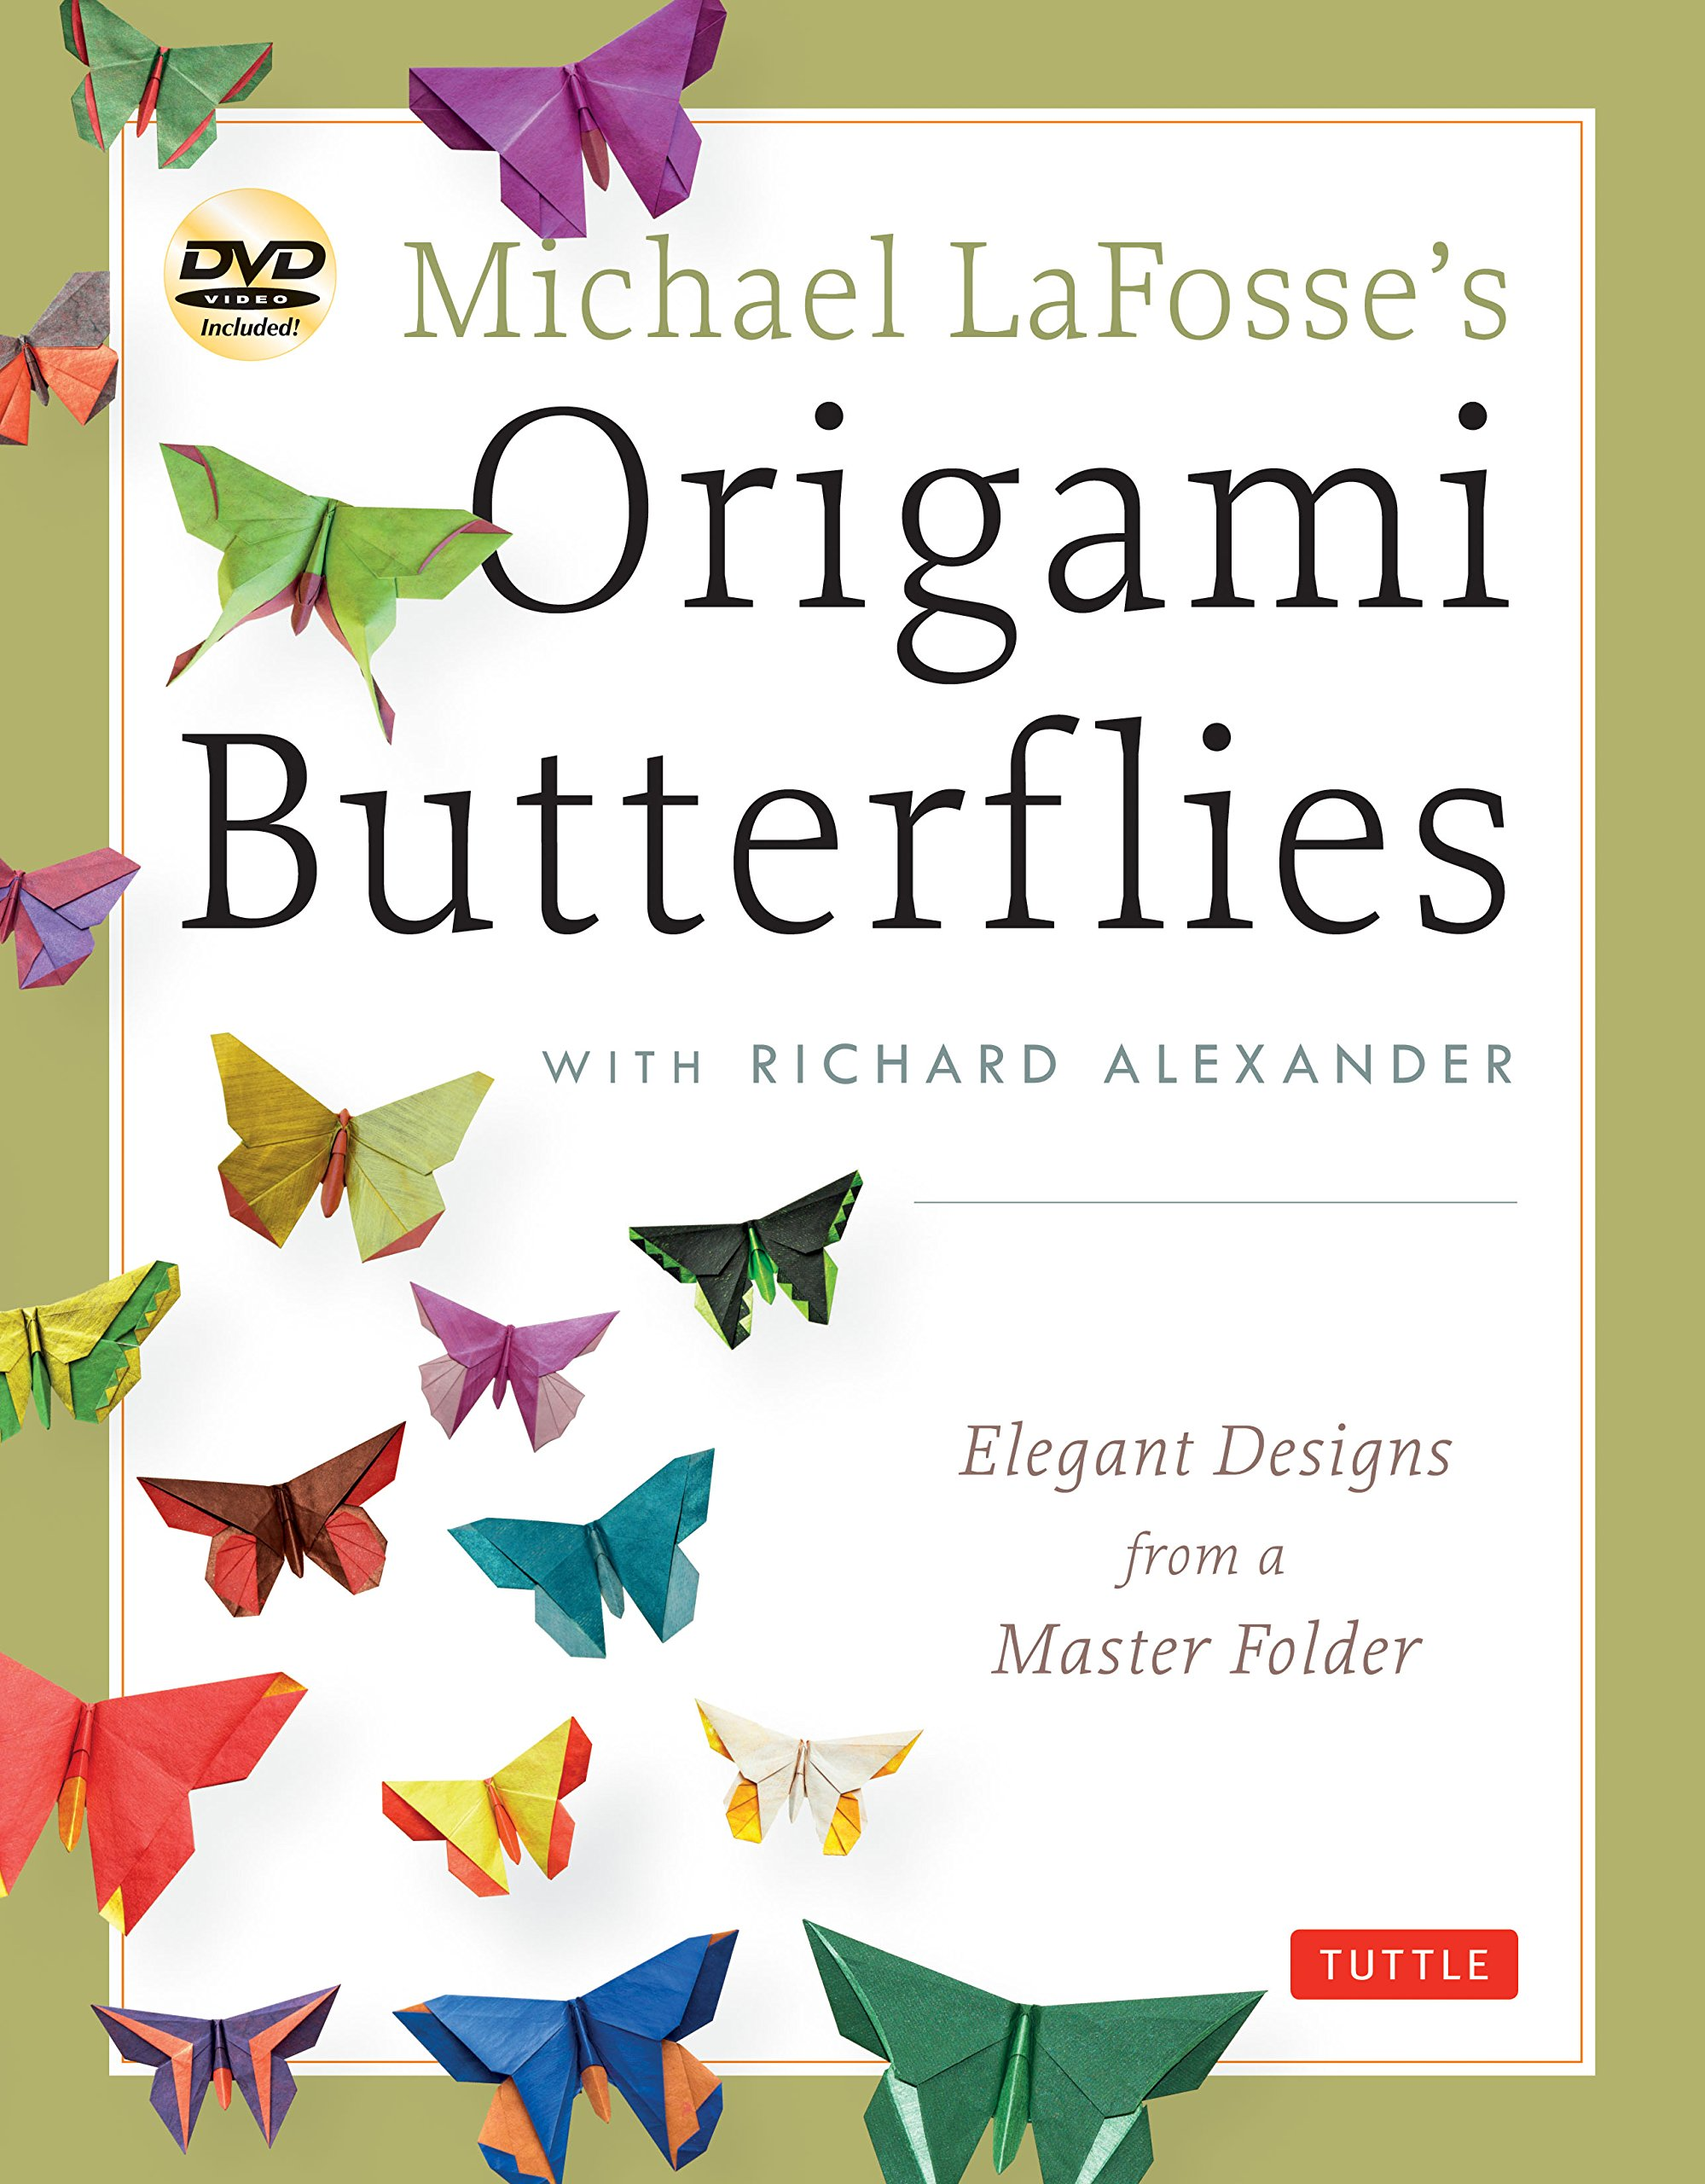 Origami Butterflies Kit: The LaFosse Butterfly Design System - Kit ... | 2560x1999